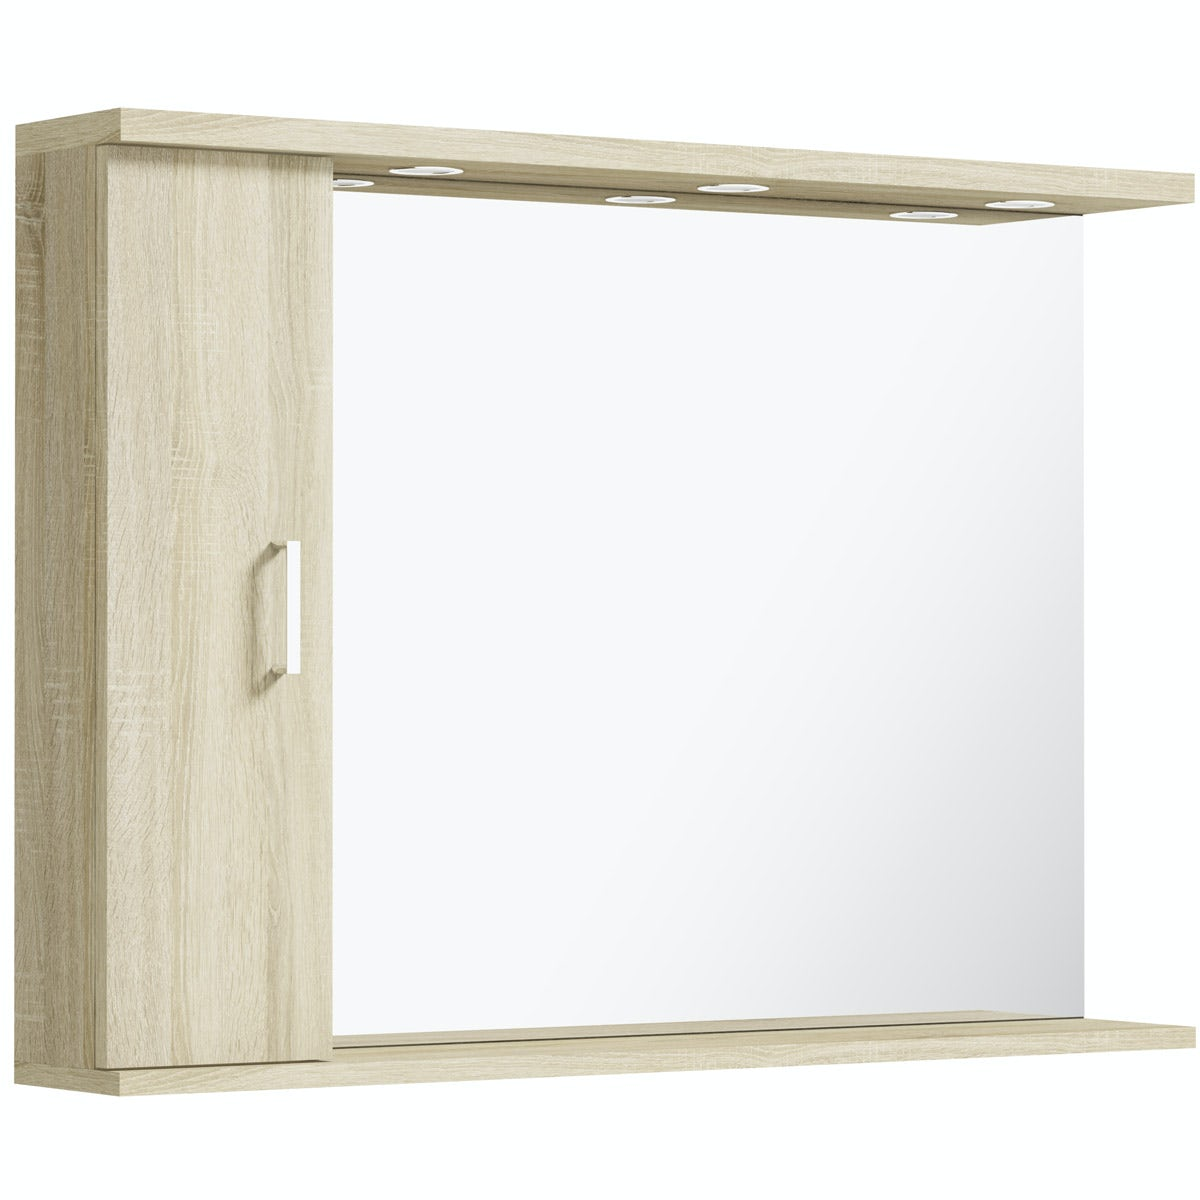 Orchard Eden oak illuminated mirror 1050mm